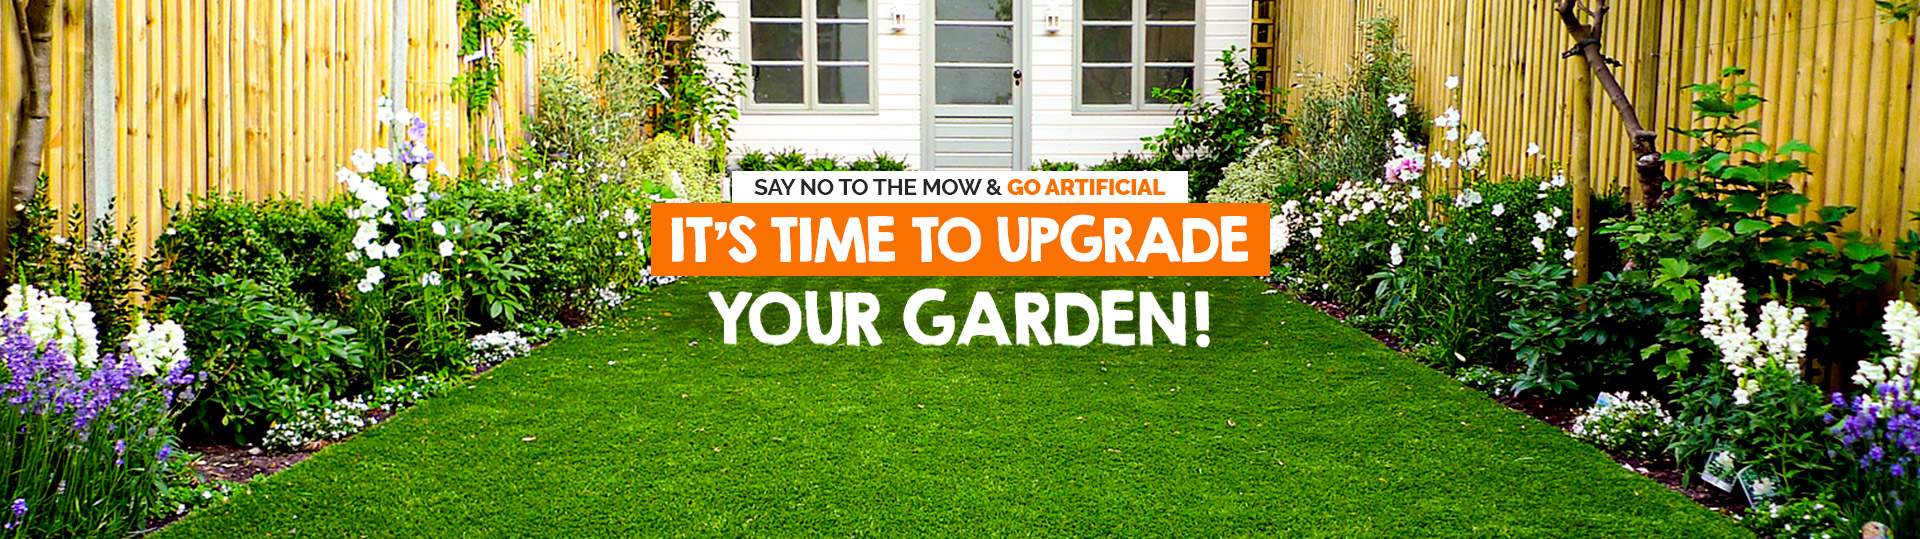 Time to upgrade your garden banner image homepage